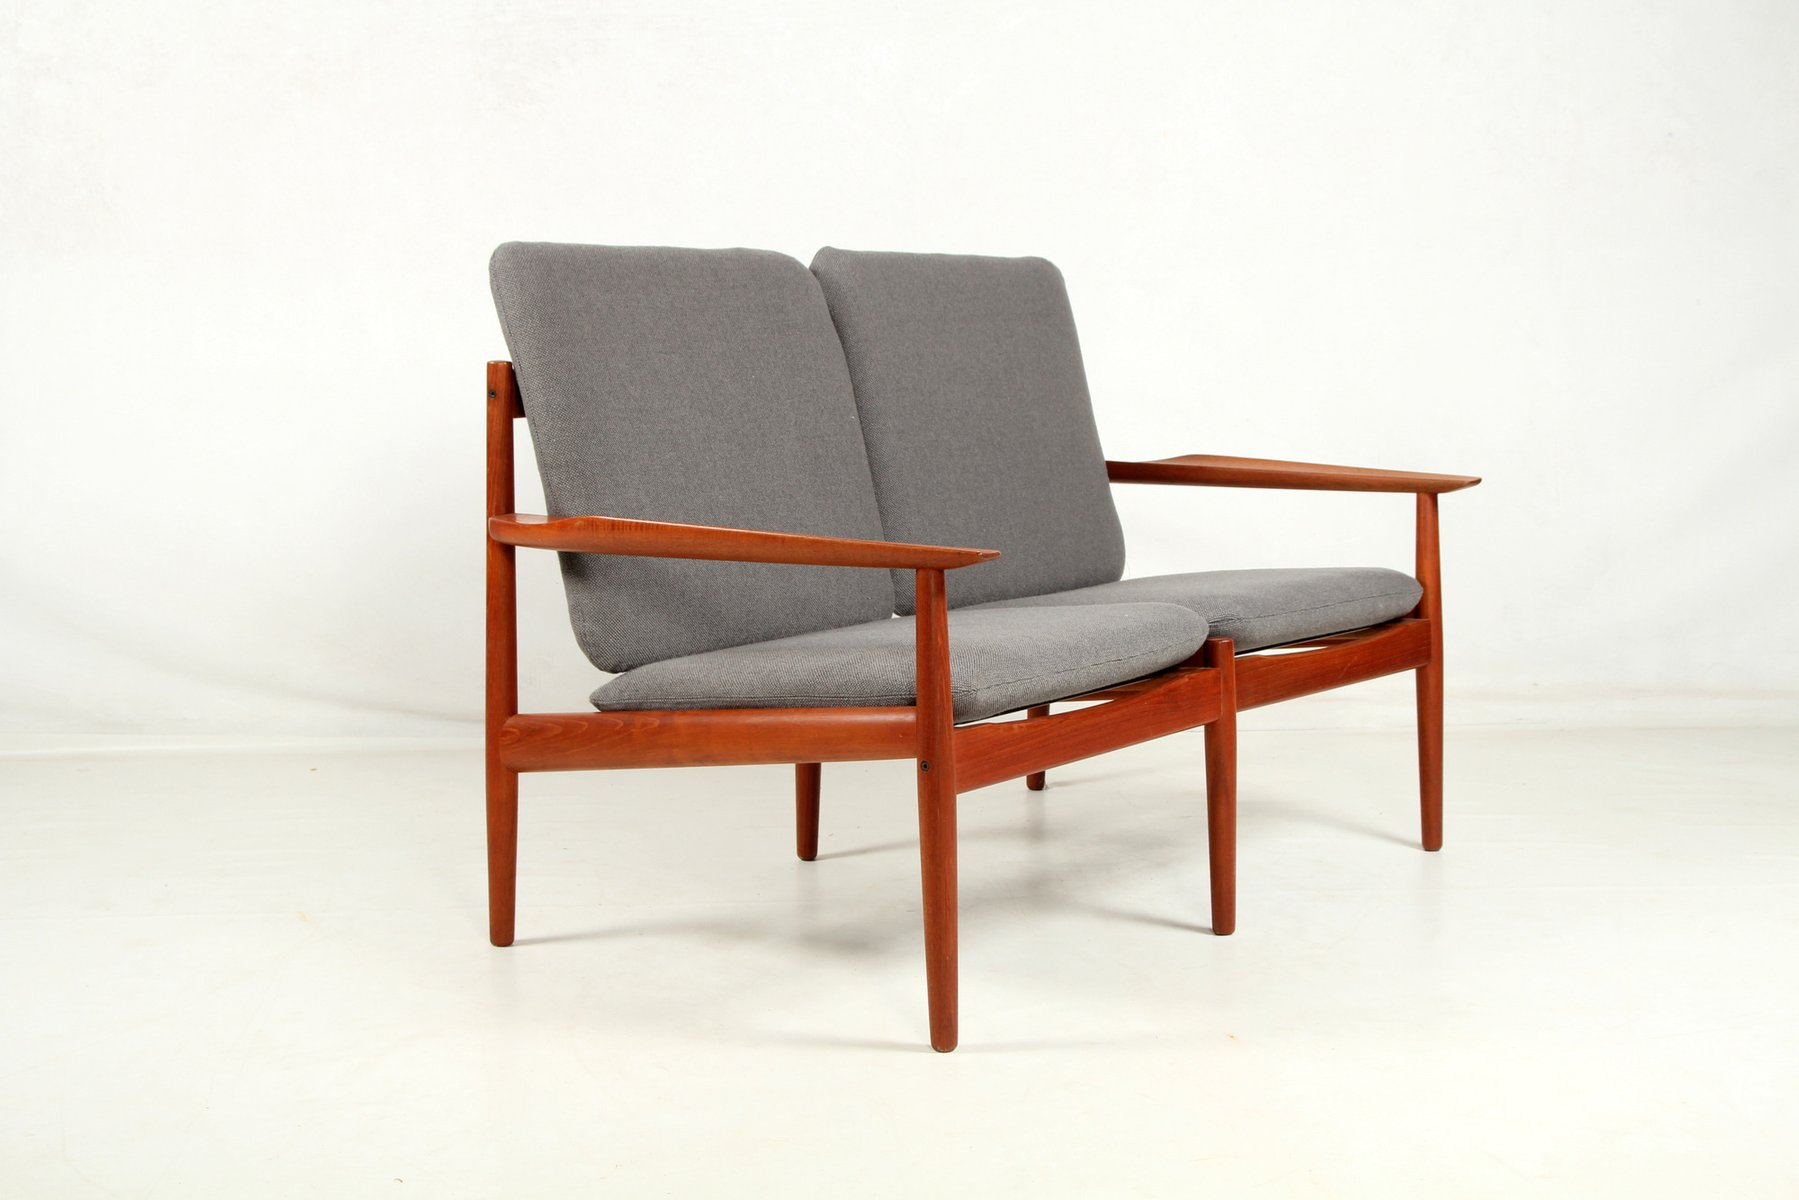 Teak Sofa By Arne Vodder For Glostrup 1960s For Sale At Pamono